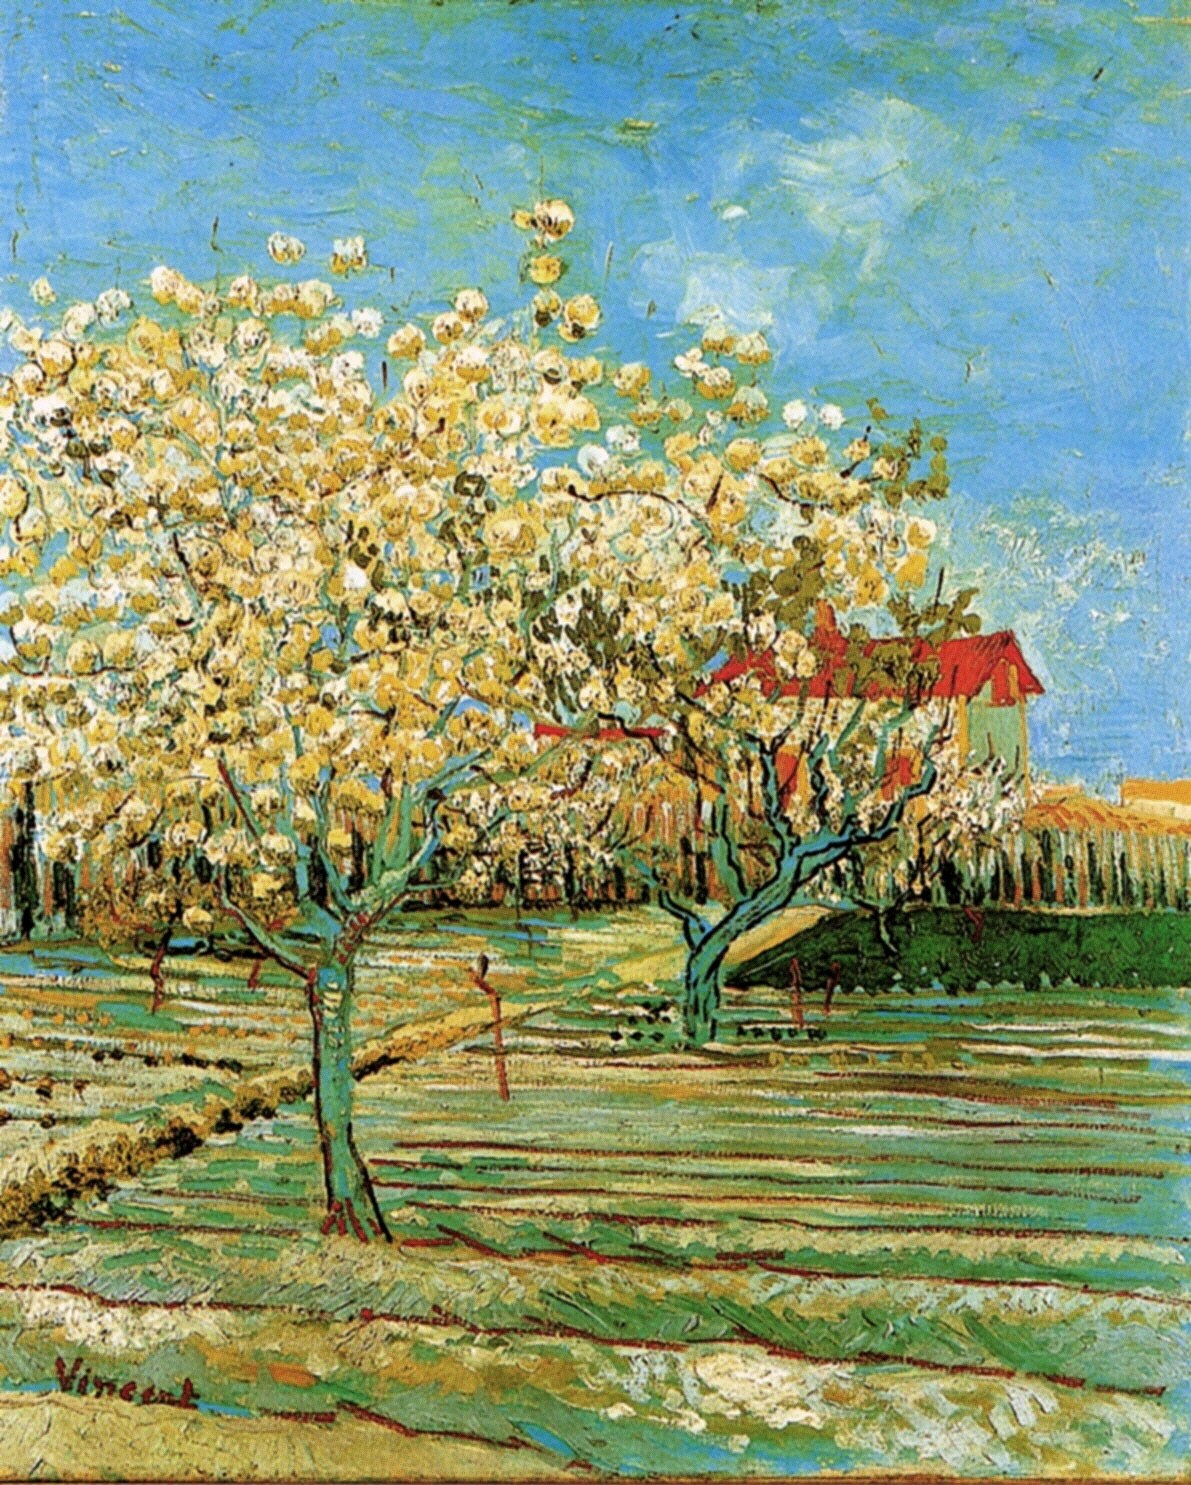 the flowering orchard by vincent van 80% off a hand made oil painting reproduction of flowering orchard, one of the most famous paintings by vincent van gogh free certificate of authenticity free shipping.